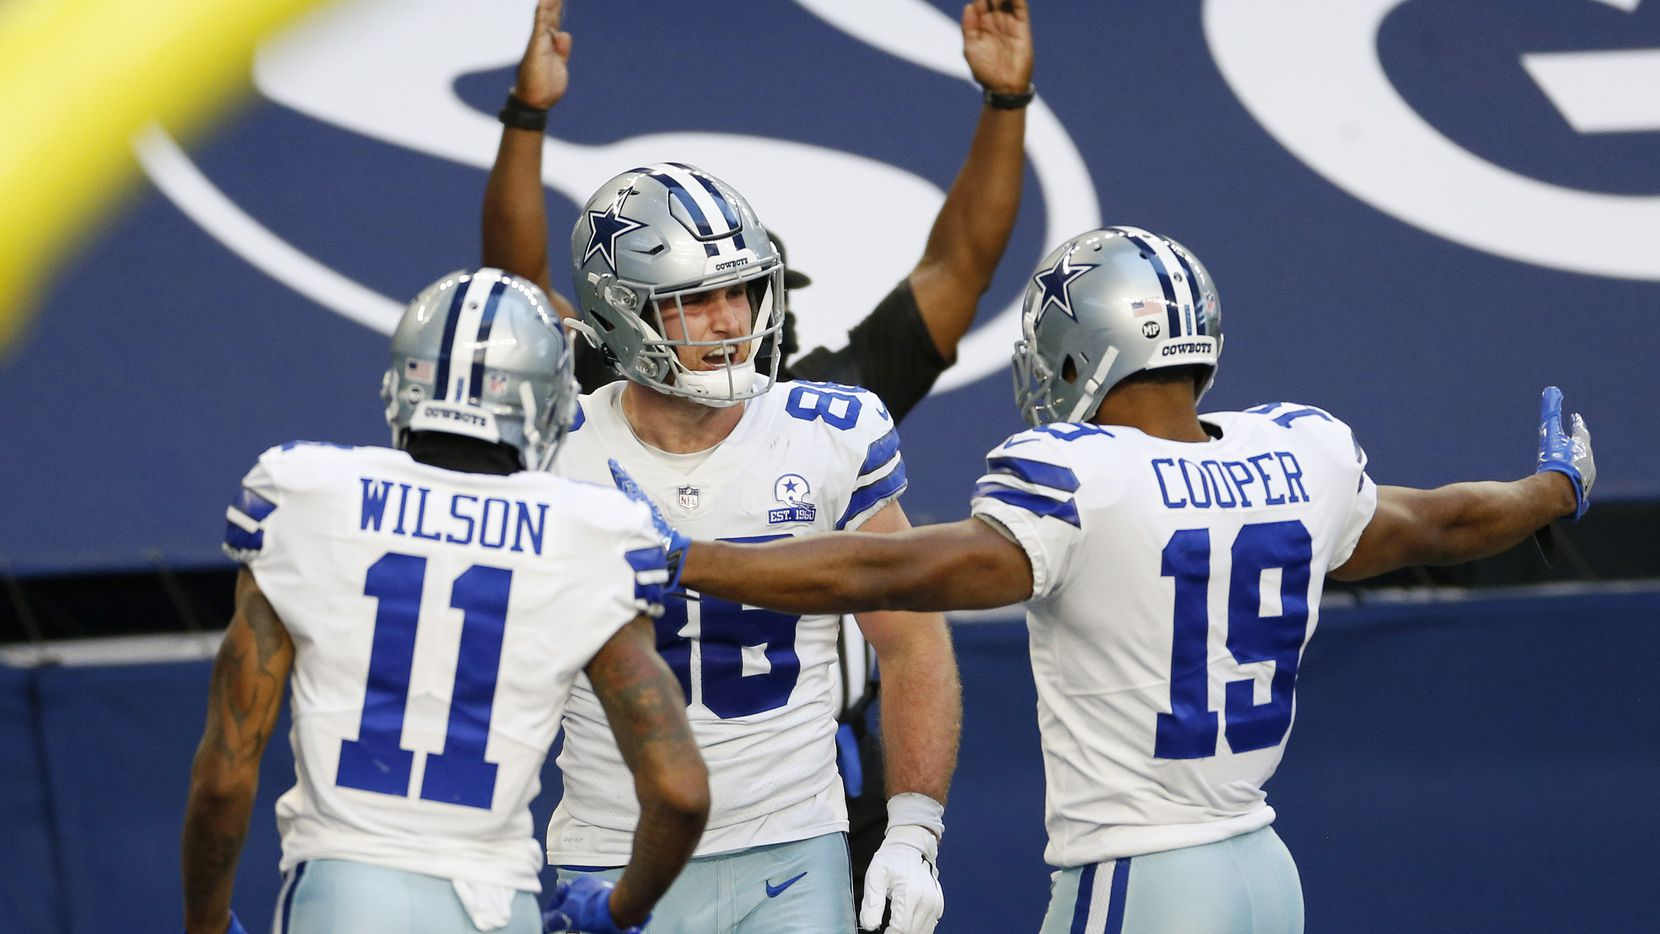 Cowboys tight end Dalton Schultz (86) is congratulated by teammates Cedrick Wilson (11) and Amari Cooper (19) after scoring a touchdown against the 49ers at AT&T Stadium on Sunday, Dec. 20, 2020, in Arlington.